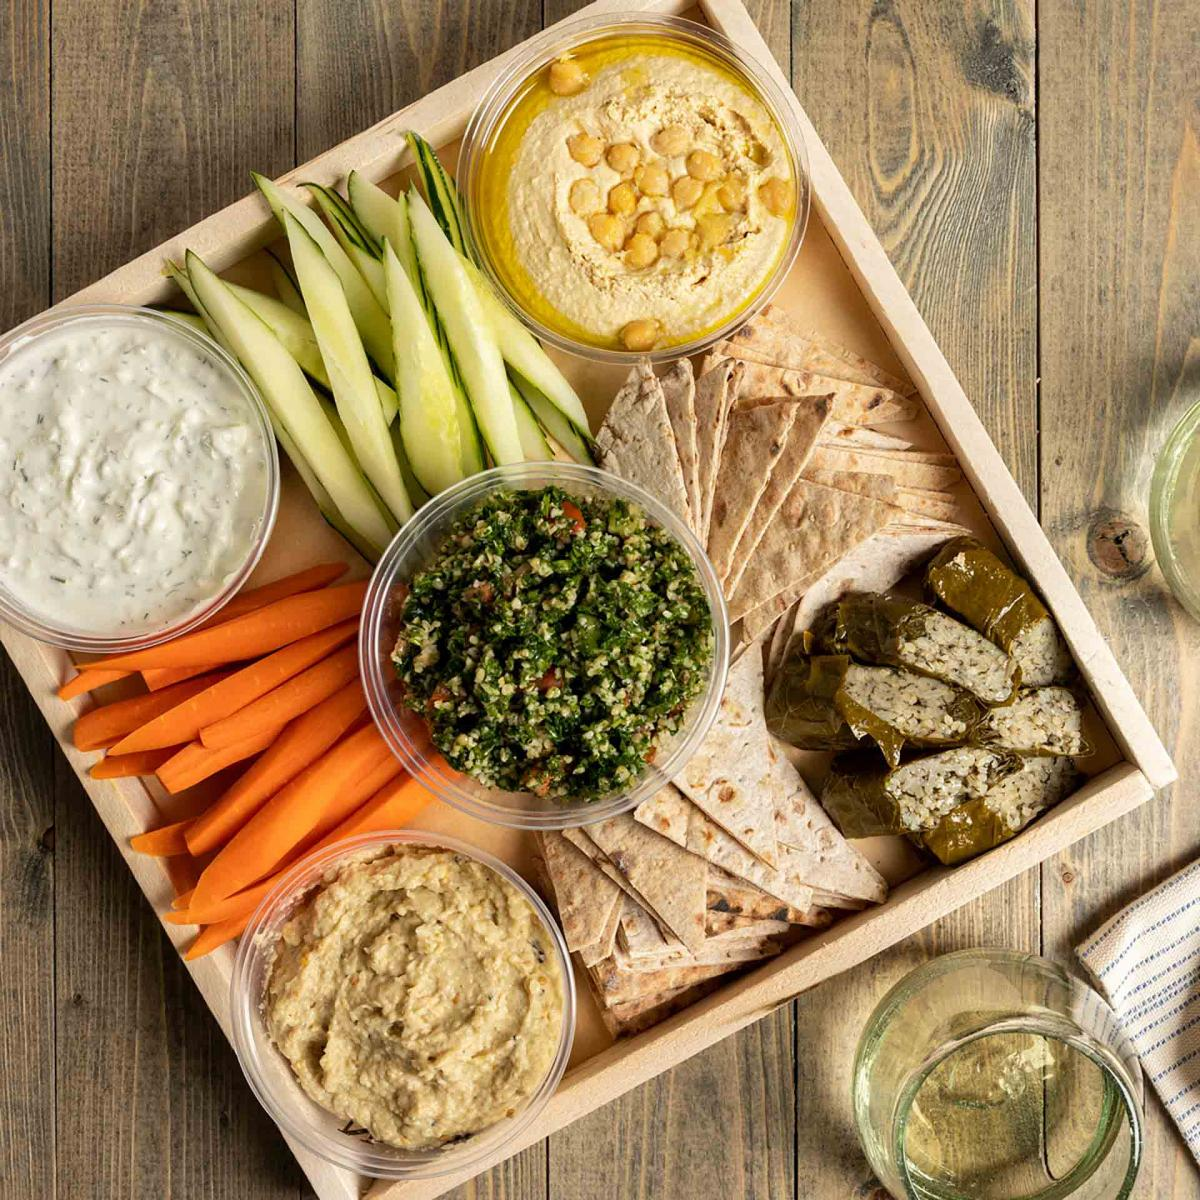 A tray of hummus, baba ganoush, tzatziki, flatbread triangles, tabbouleh, dolmas and crudités